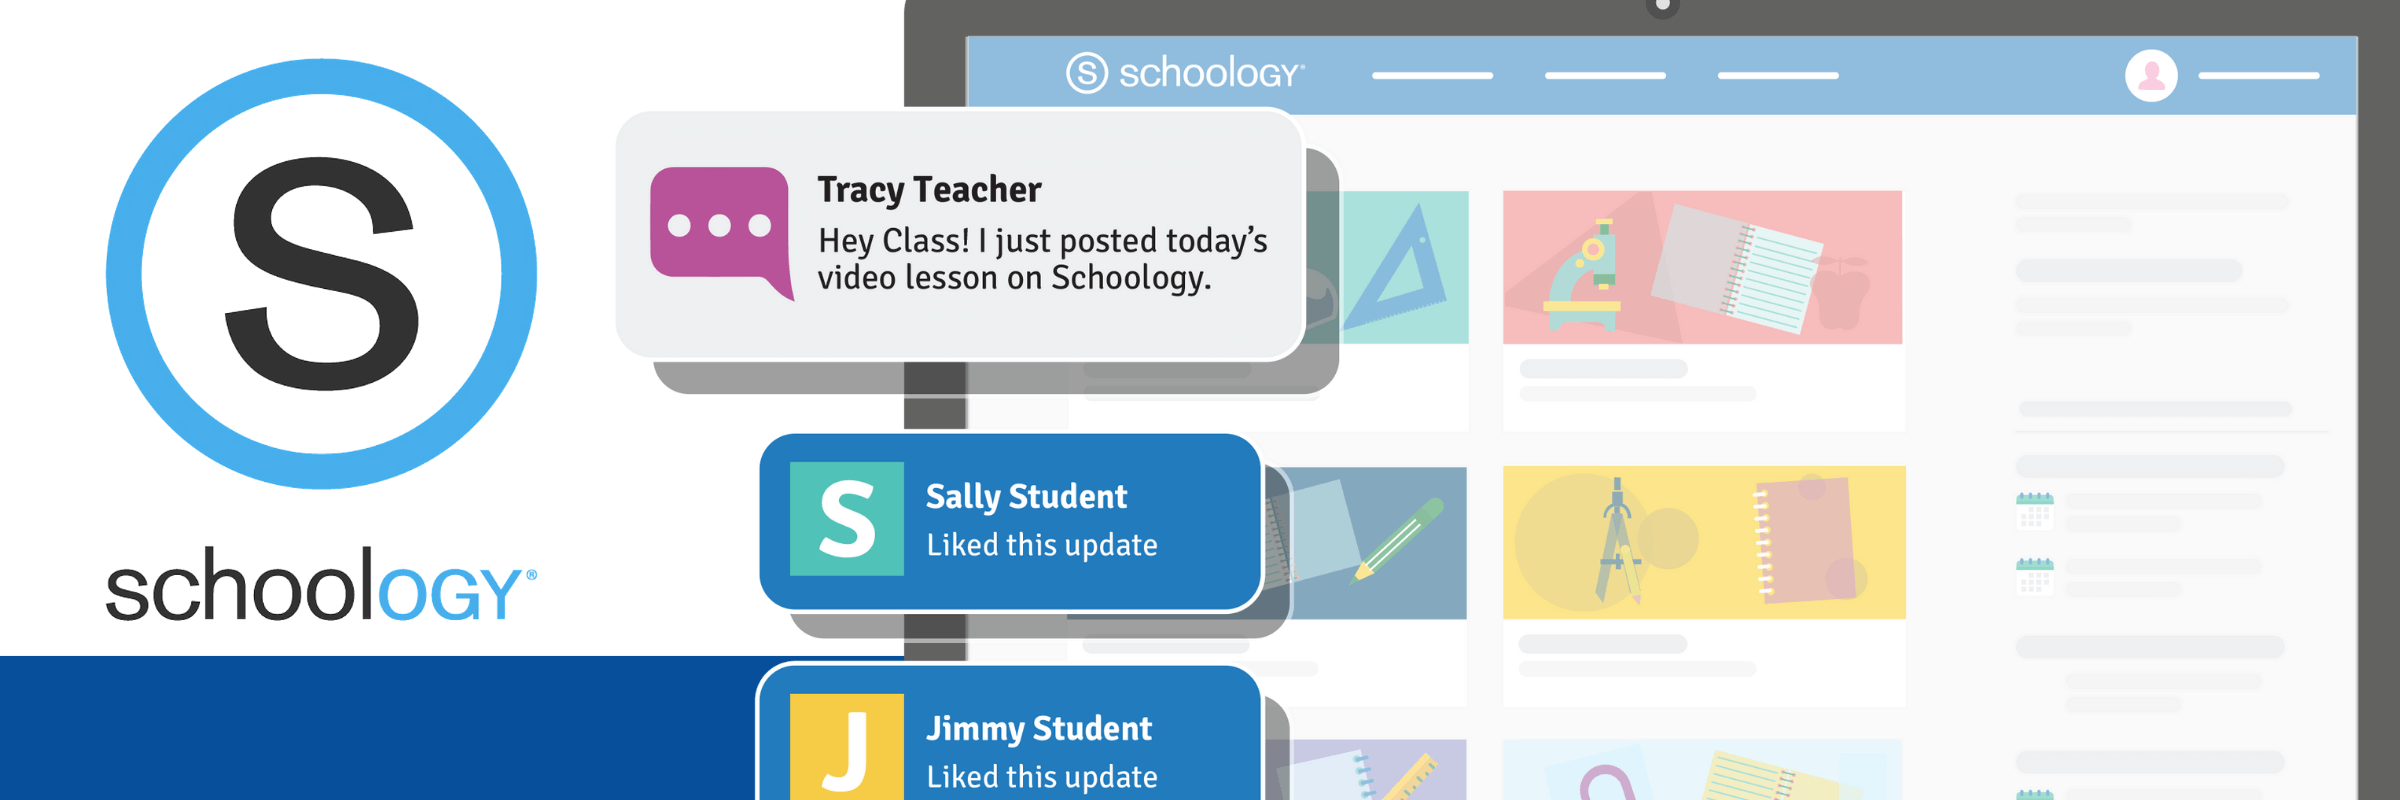 About Schoology Harmony School Of Innovation Sugar Land